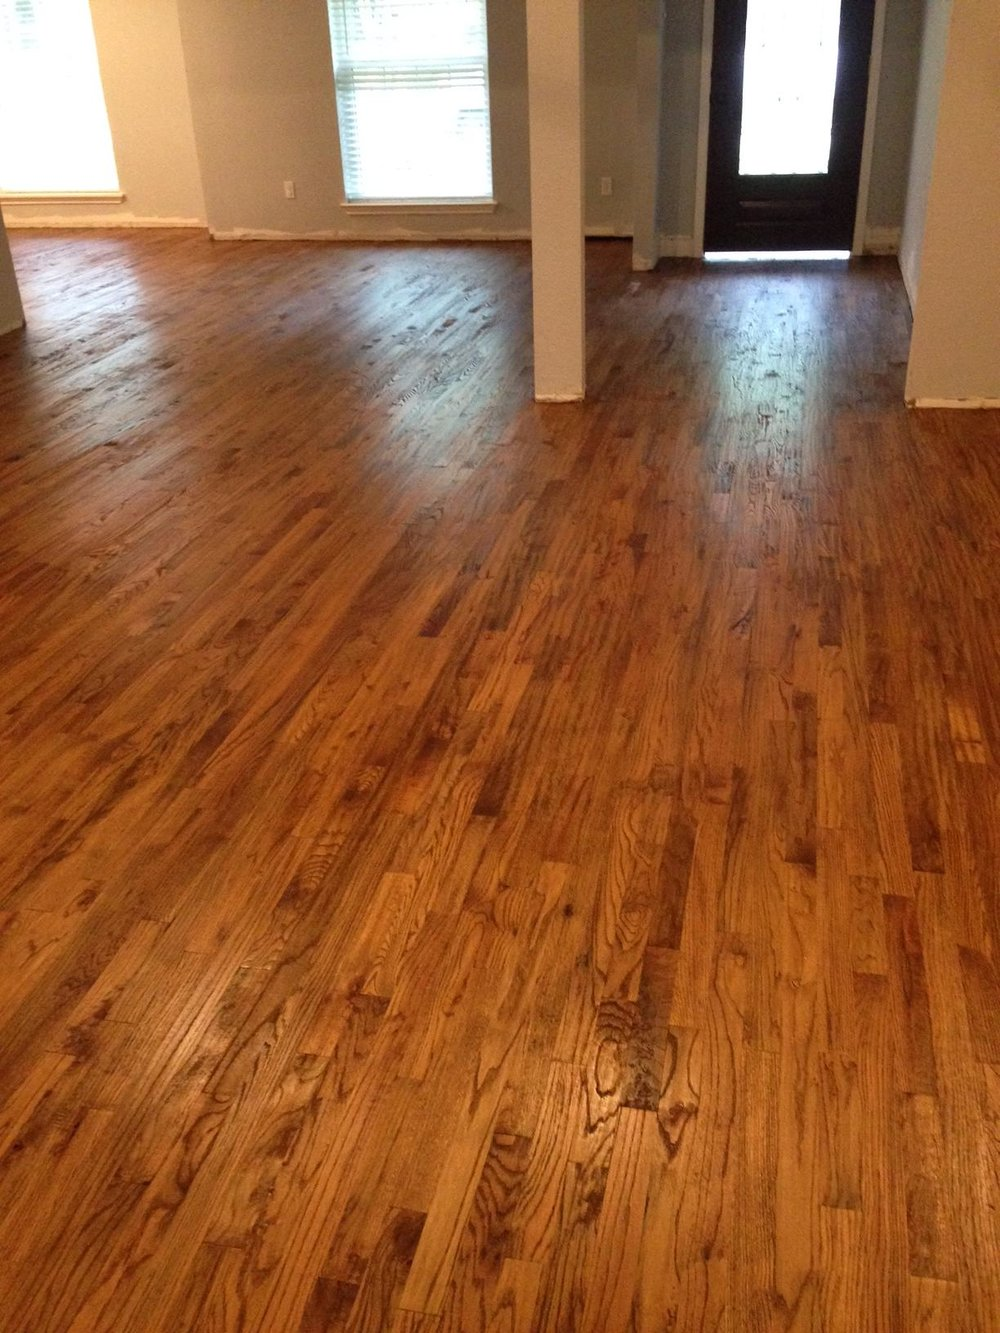 hardwood floors.jpg